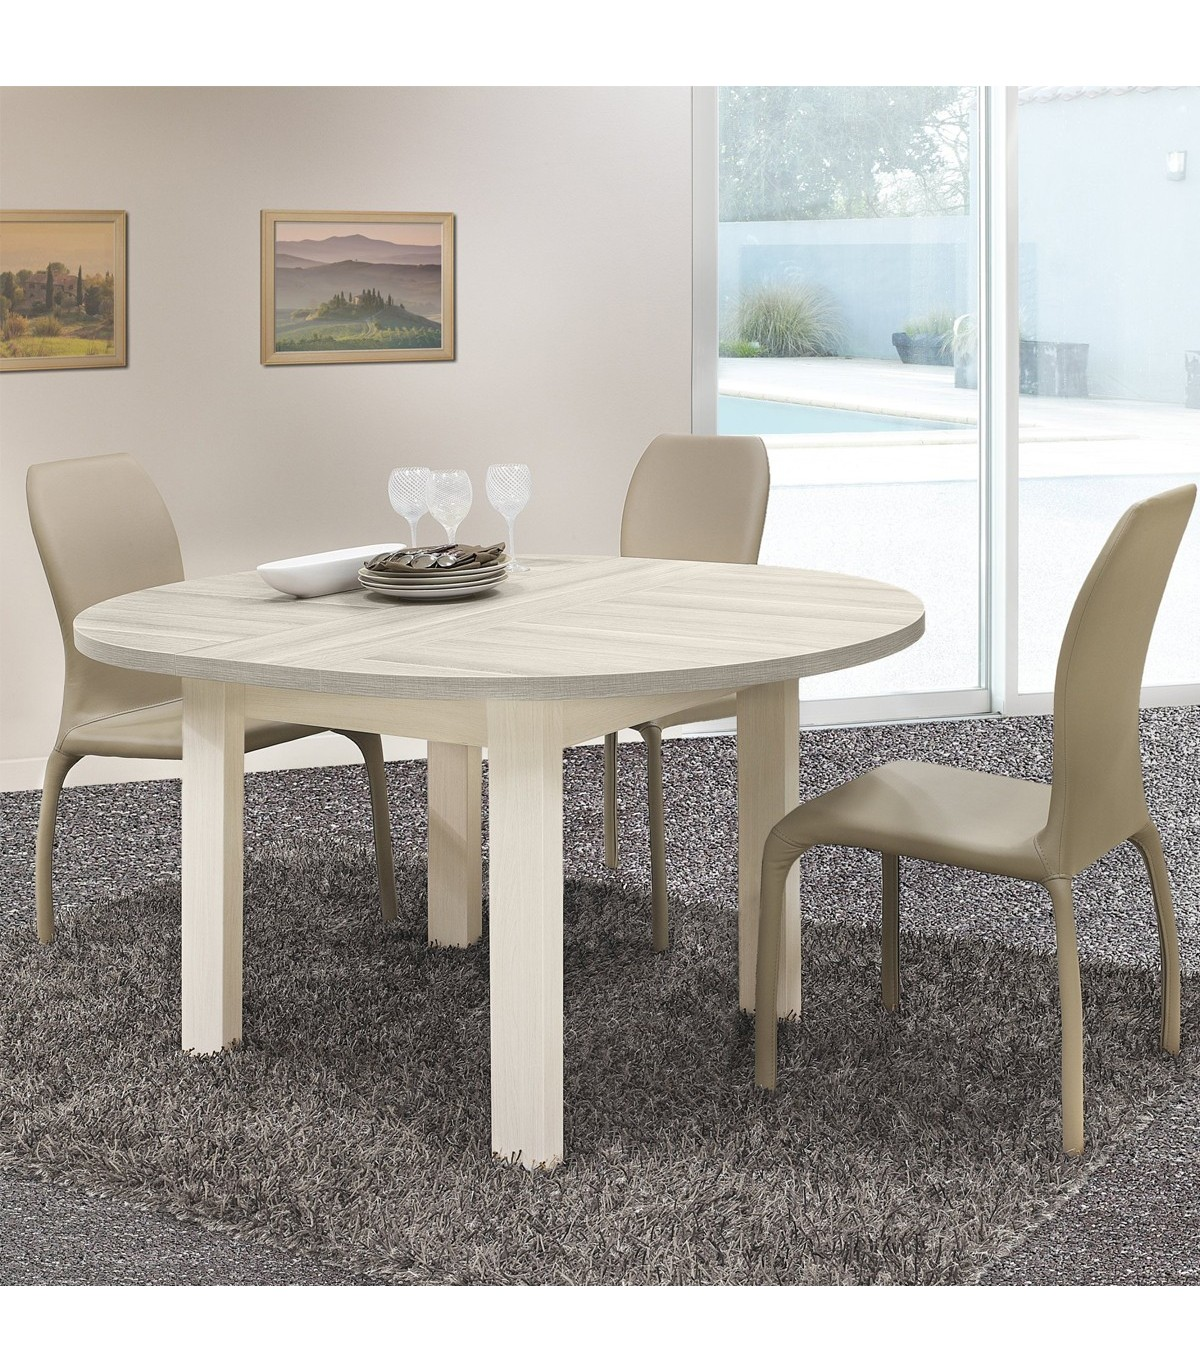 table a manger ronde avec allonge incluse fabrication francaise